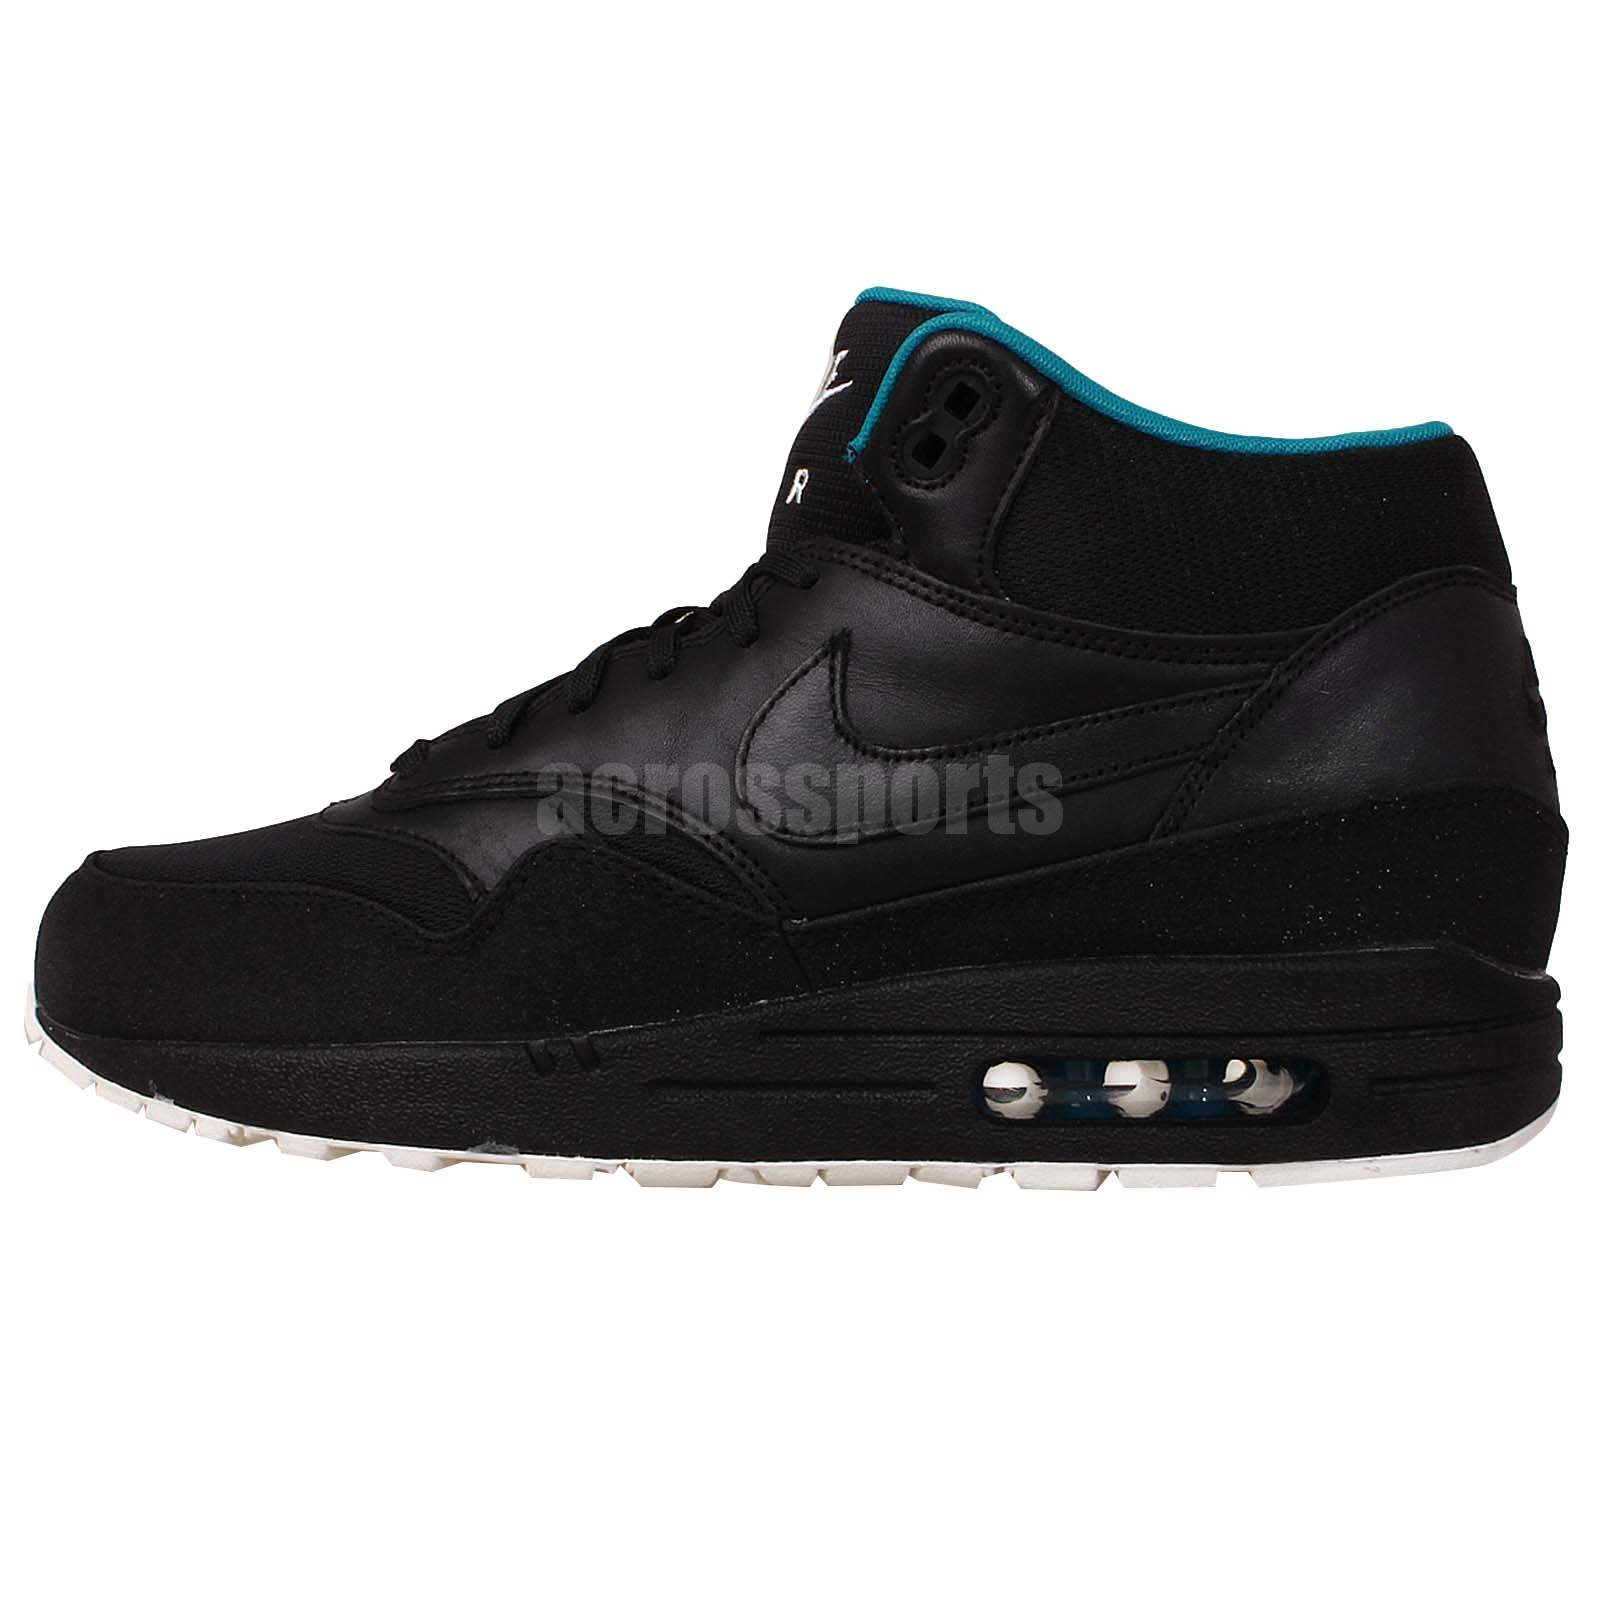 online store eab23 f178a ... 95 thats exactly what wholesale air max fb ebay nike air max silver  bullet 00478 9c268 ...